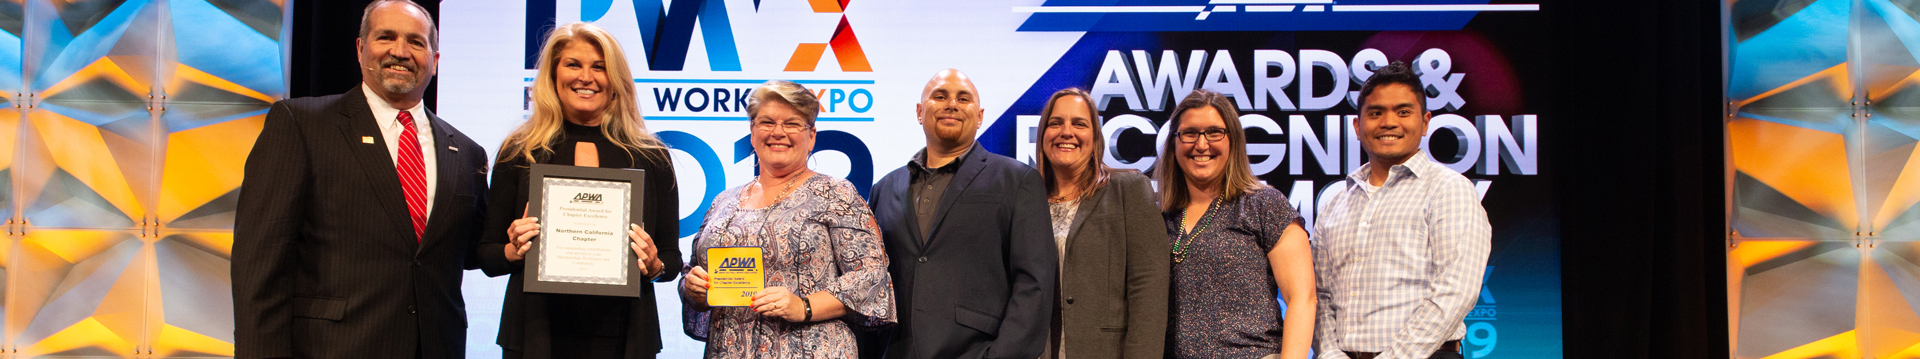 A group of public works professionals receive an APWA award at PWX